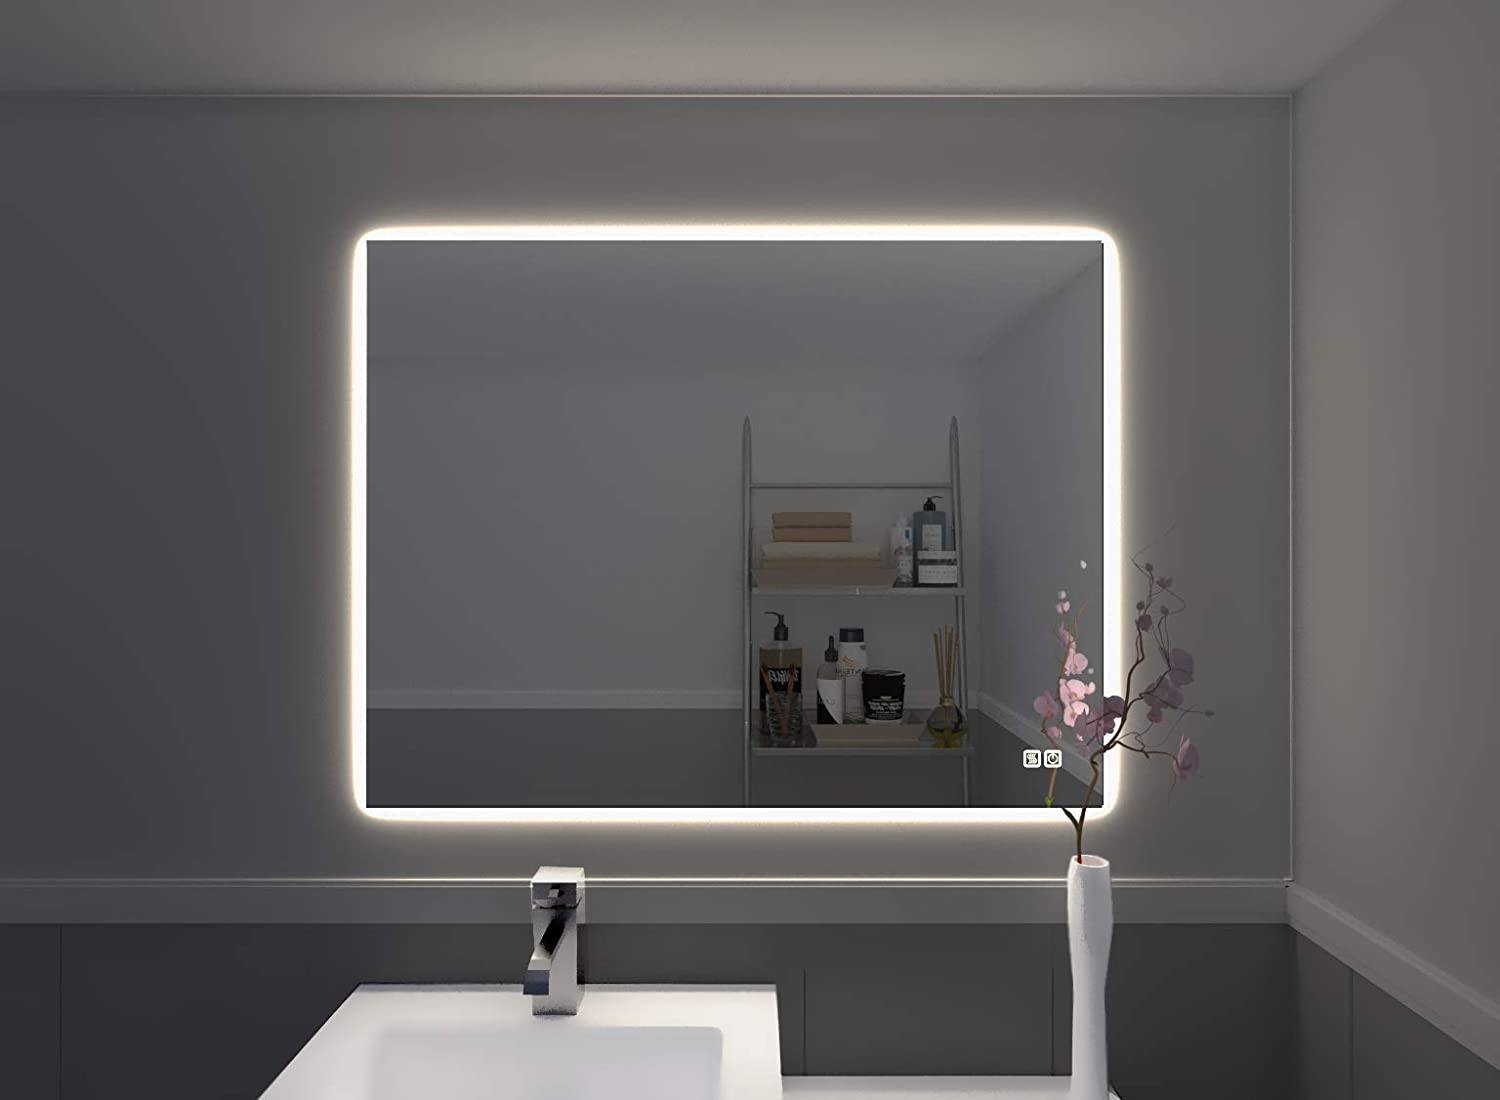 Amazon Com Naomi Home Bathroom Mirror With Lights Led Vanity Mirror Wall Mounted Anti Fog Touch Switch Silver 31 X 23 Beauty